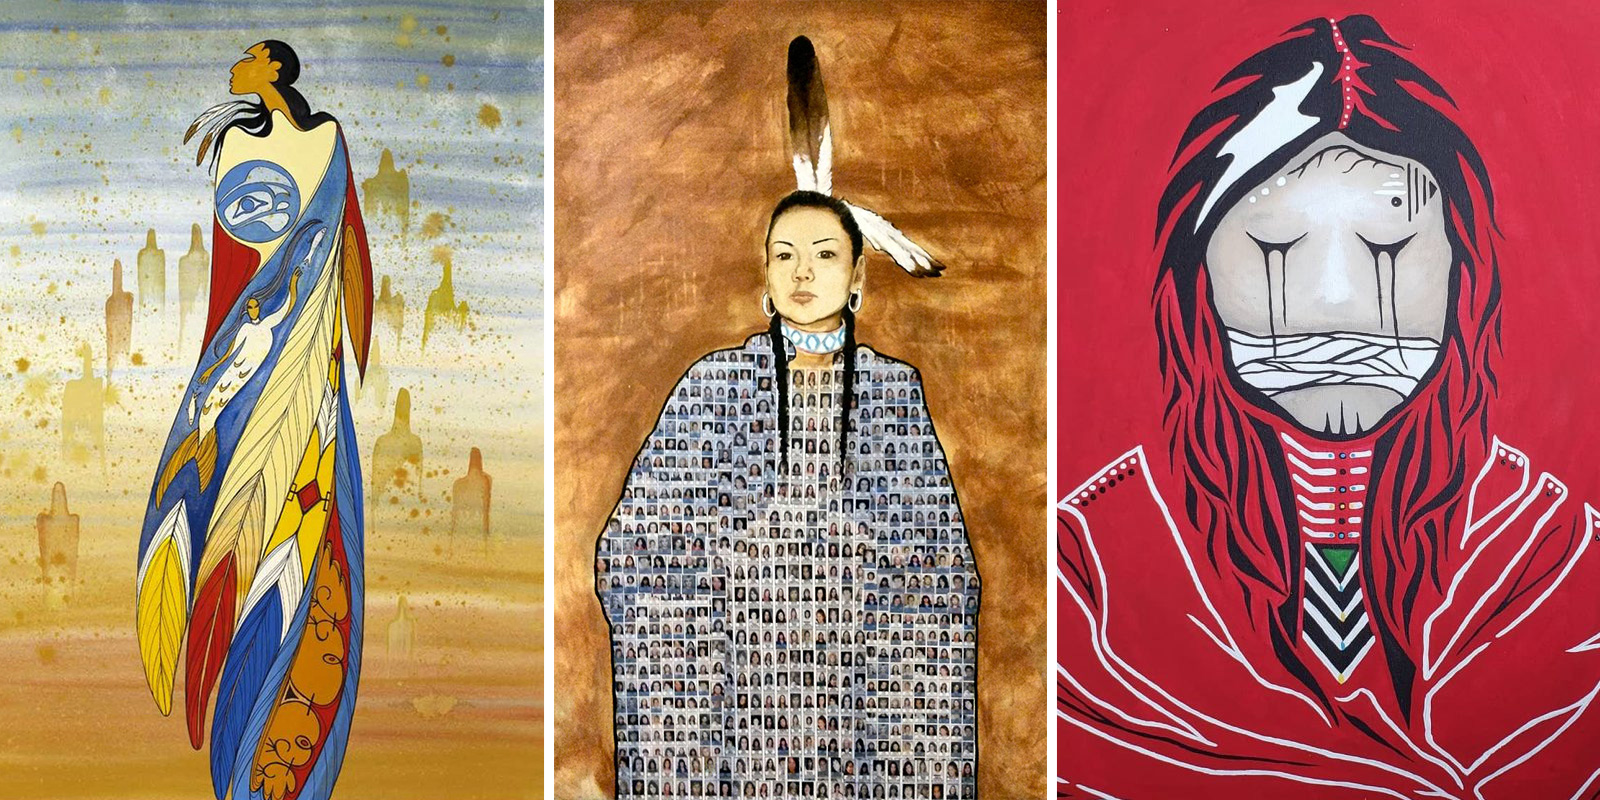 Missing and Murderdered Indigenous Women Art